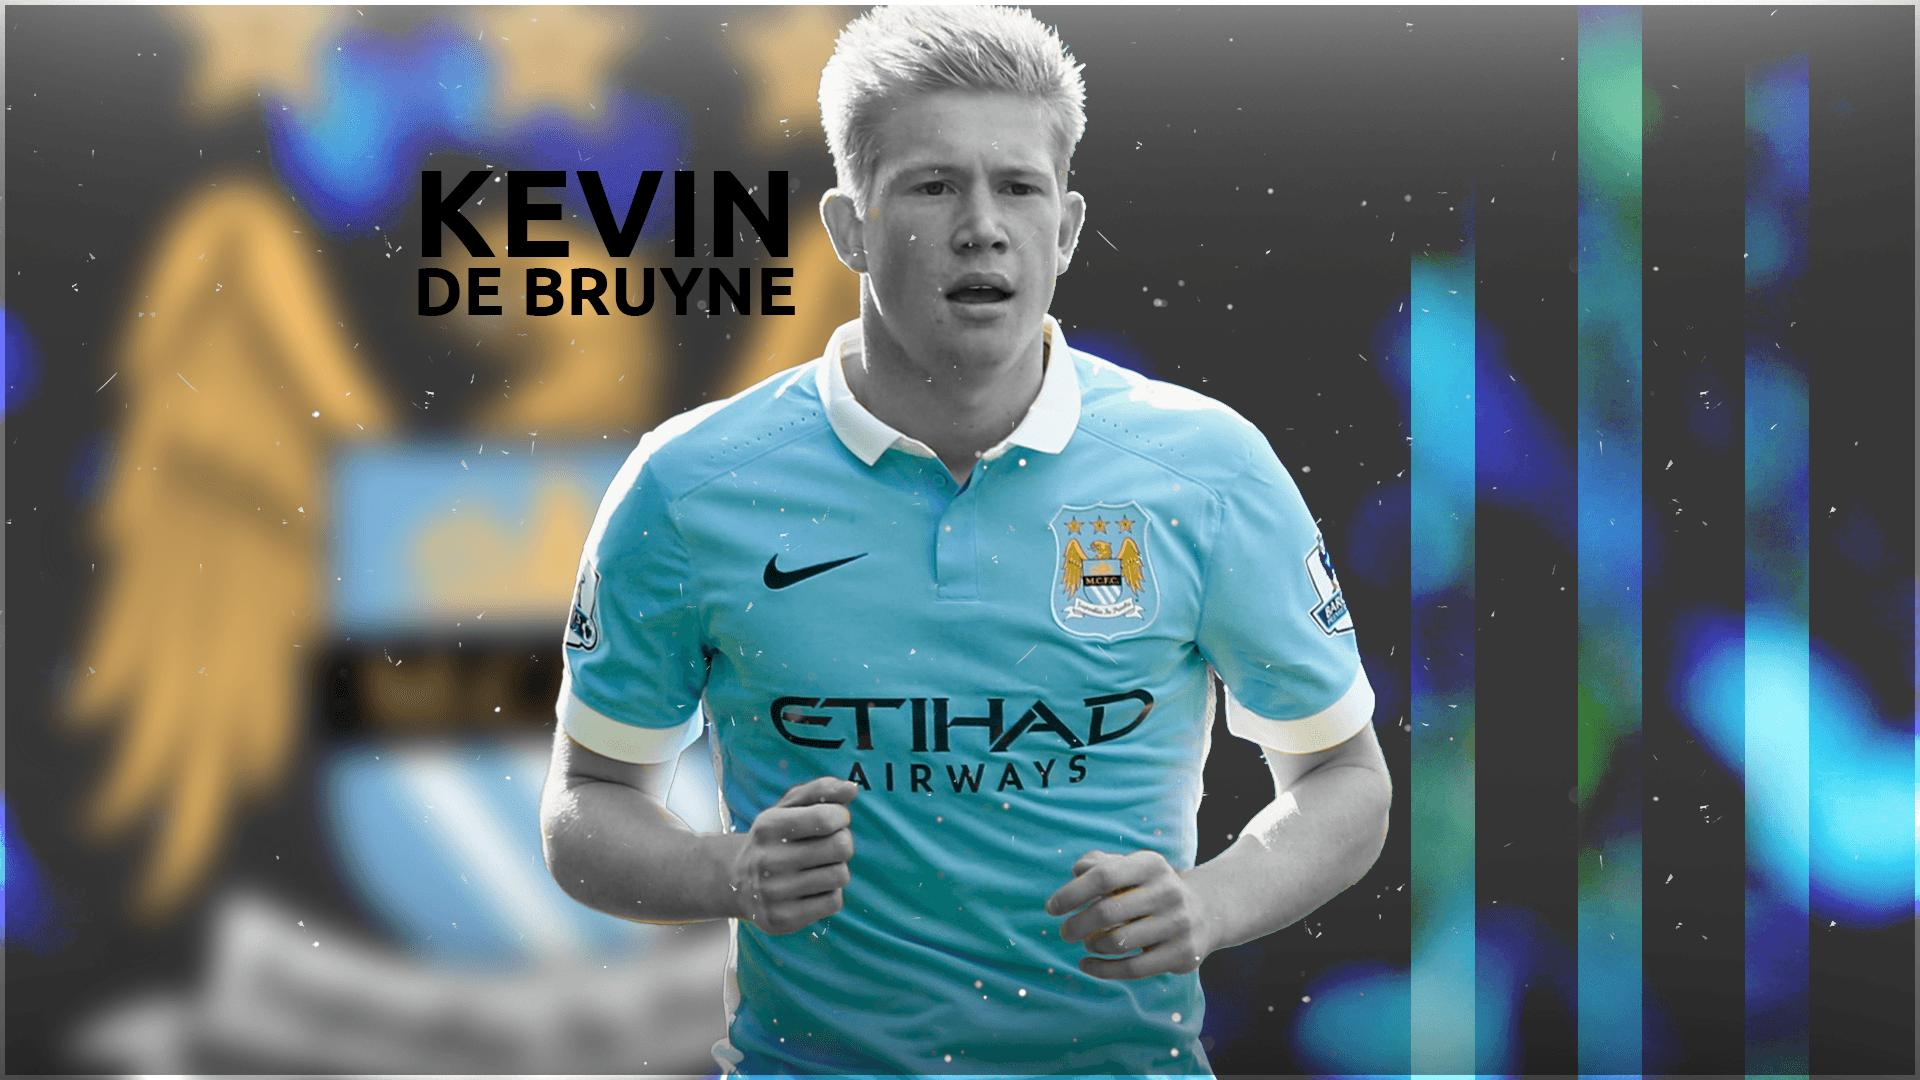 Kevin De Bruyne Wallpaper Hd For Android Apk Download